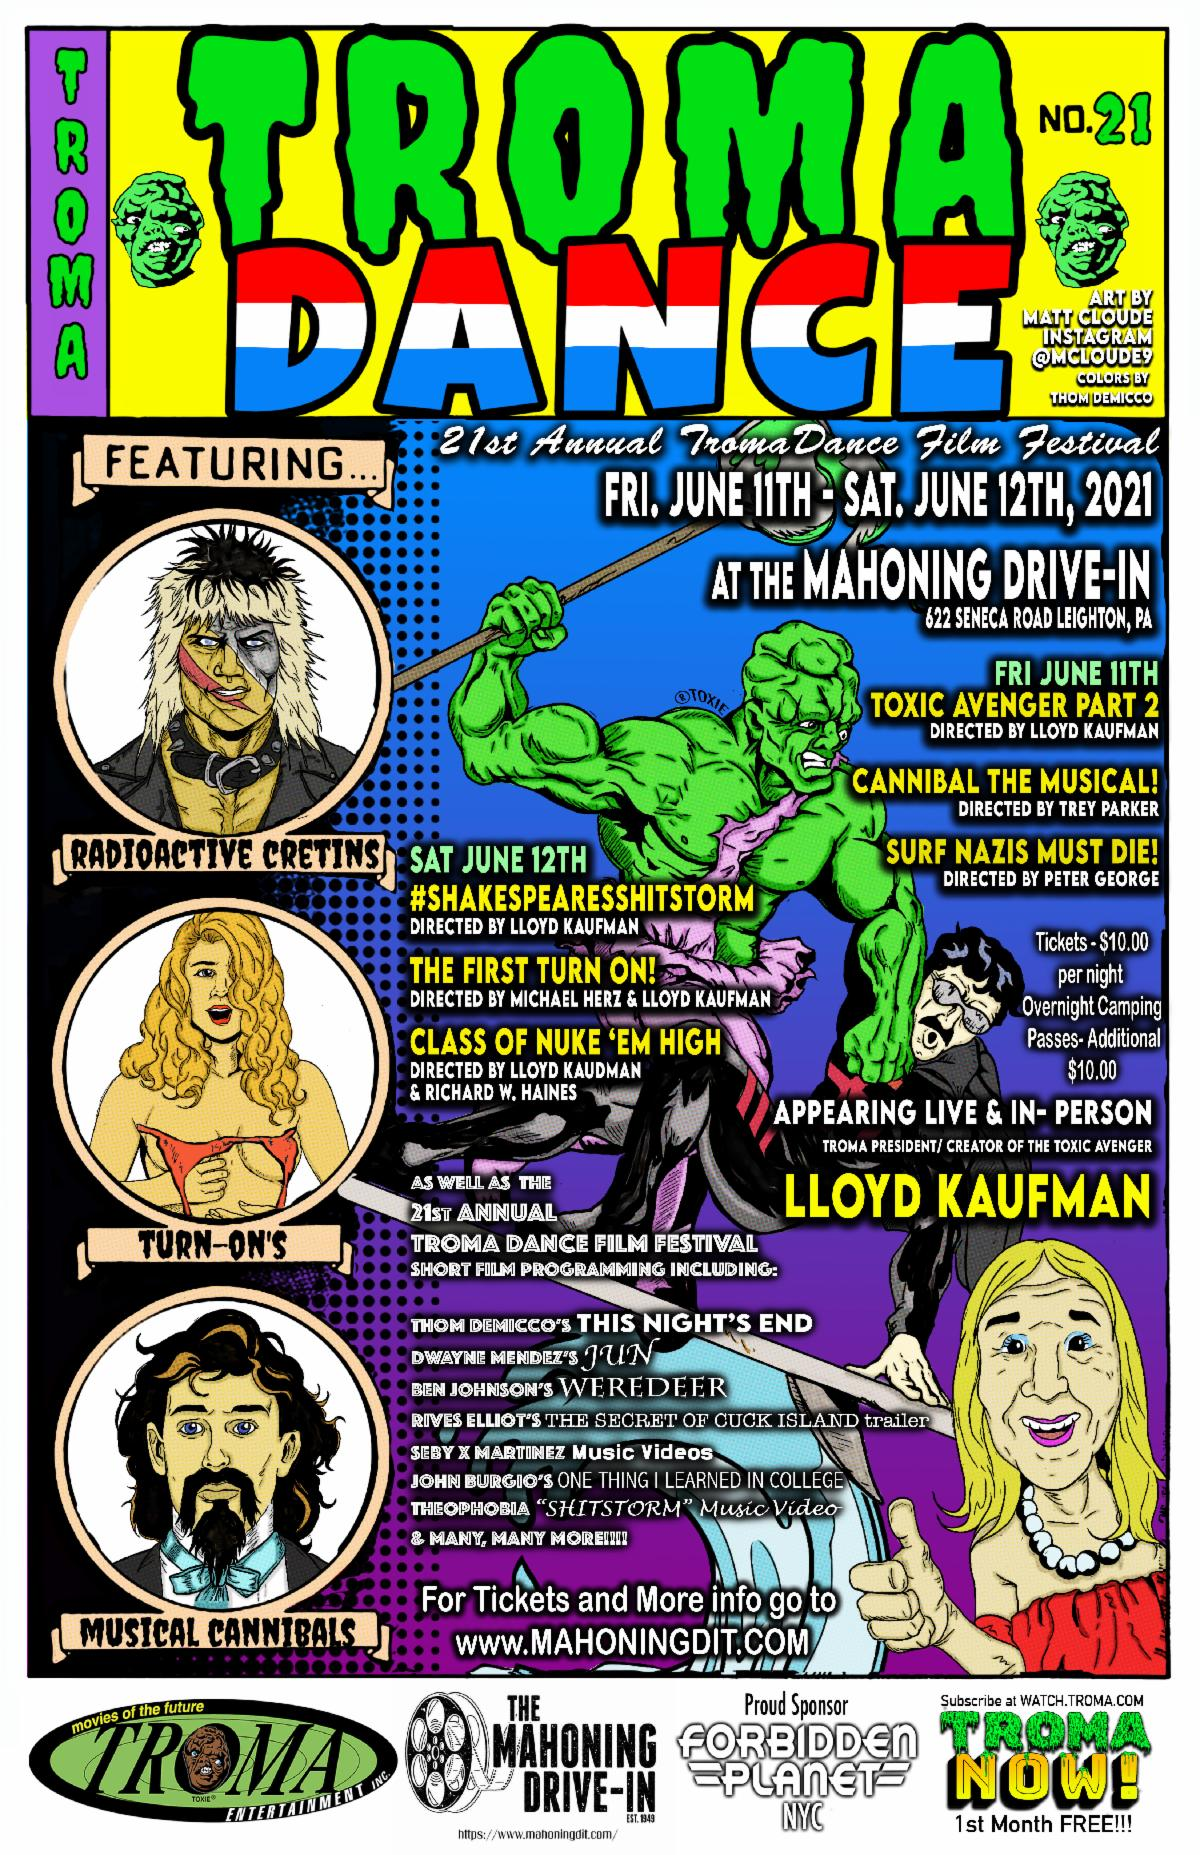 Troma Entertainment Returns to the World Famous MAHONING DRIVE-IN for the 21st Annual TROMADANCE! (USA / 11-12 June)